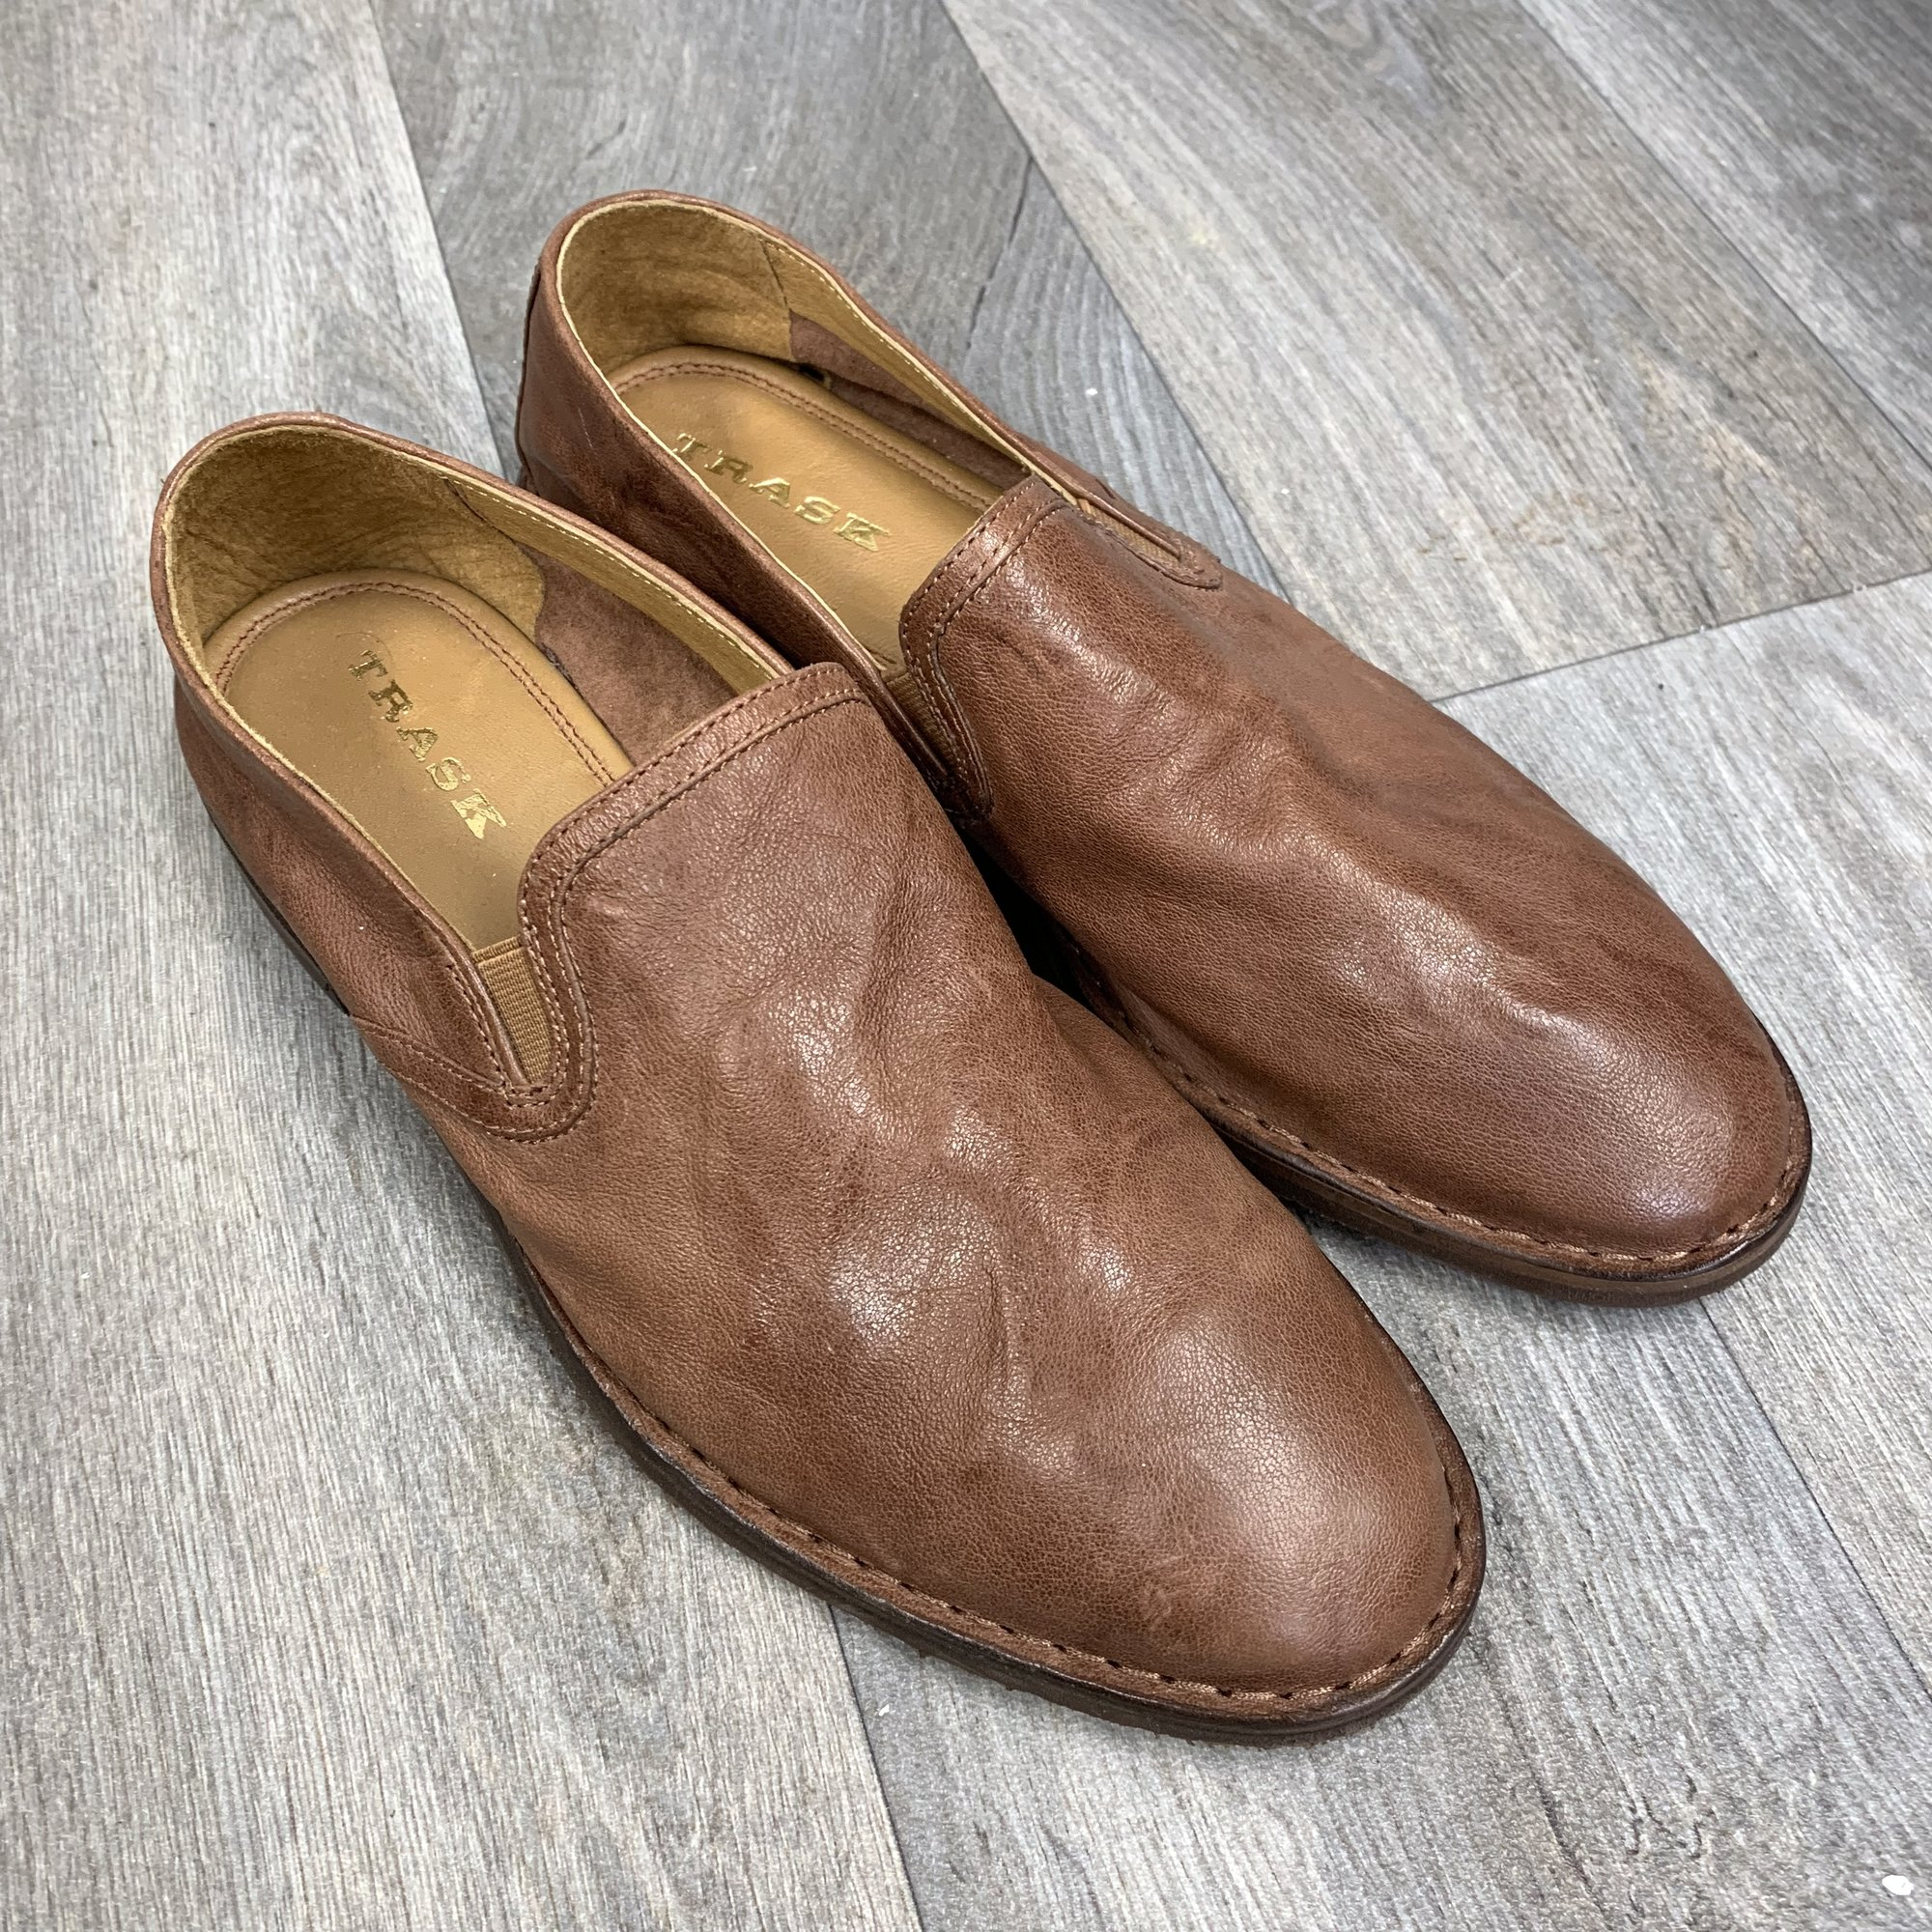 Like-new condition loafers from Trask<br /> Real leather<br /> Size 9